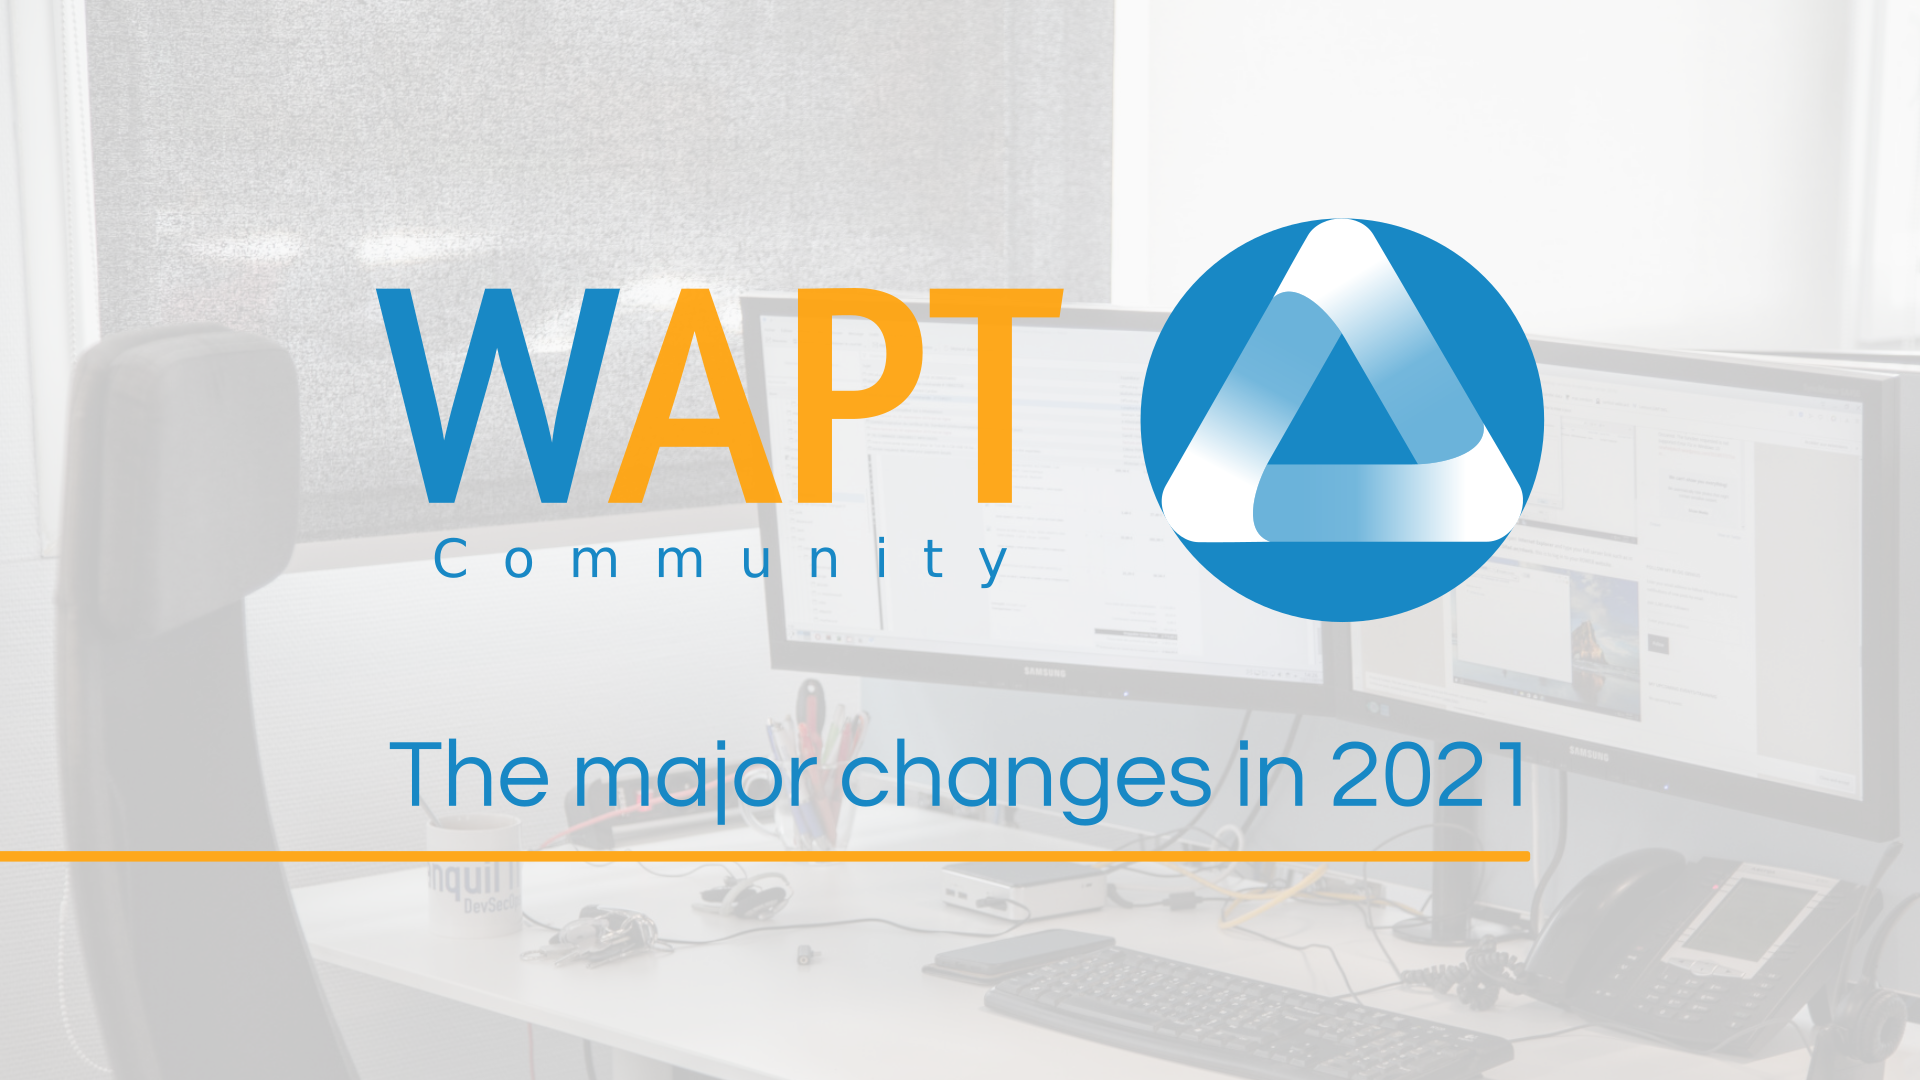 WAPT Community : The major changes in 2021